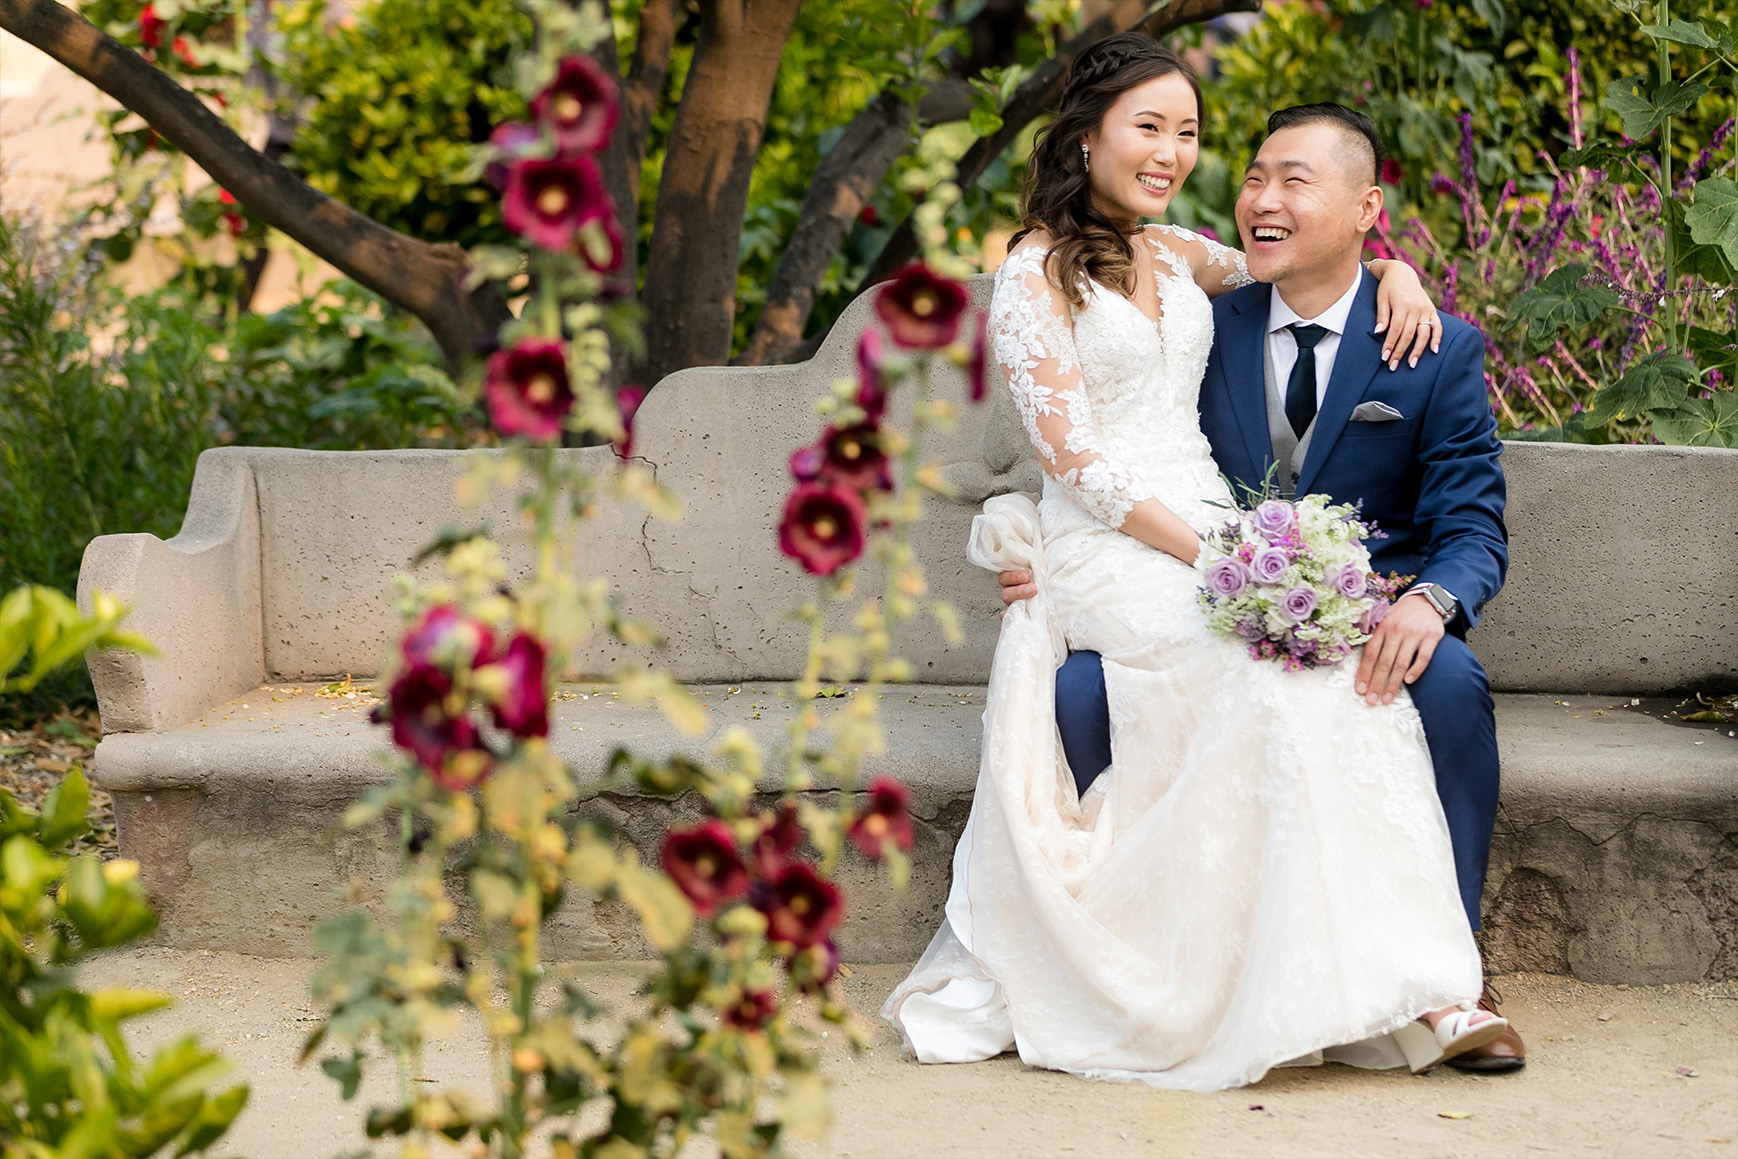 Romantic couple with red roses - San Clemente - San Clemente, California - Orange County - Wedgewood Weddings